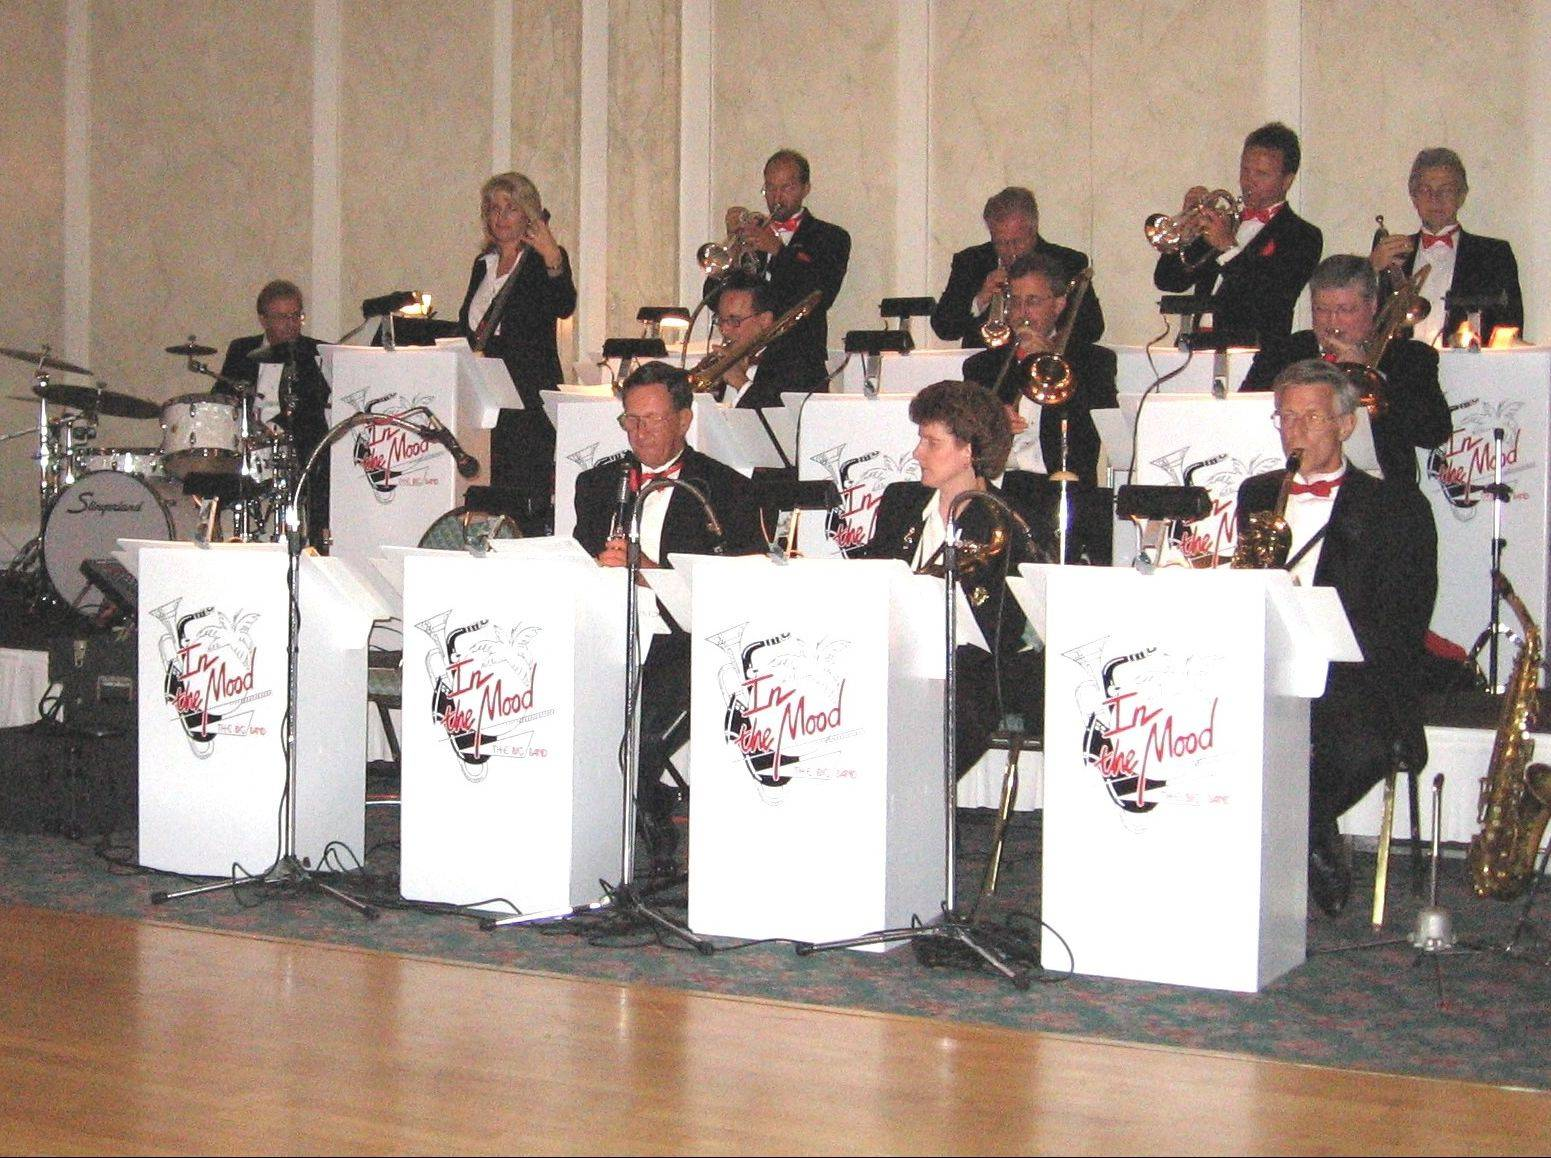 Lake Lawn Resort in Delavan, Wis., hosts an evening of Big Band music, dancing and dinner on Saturday, Nov. 2.